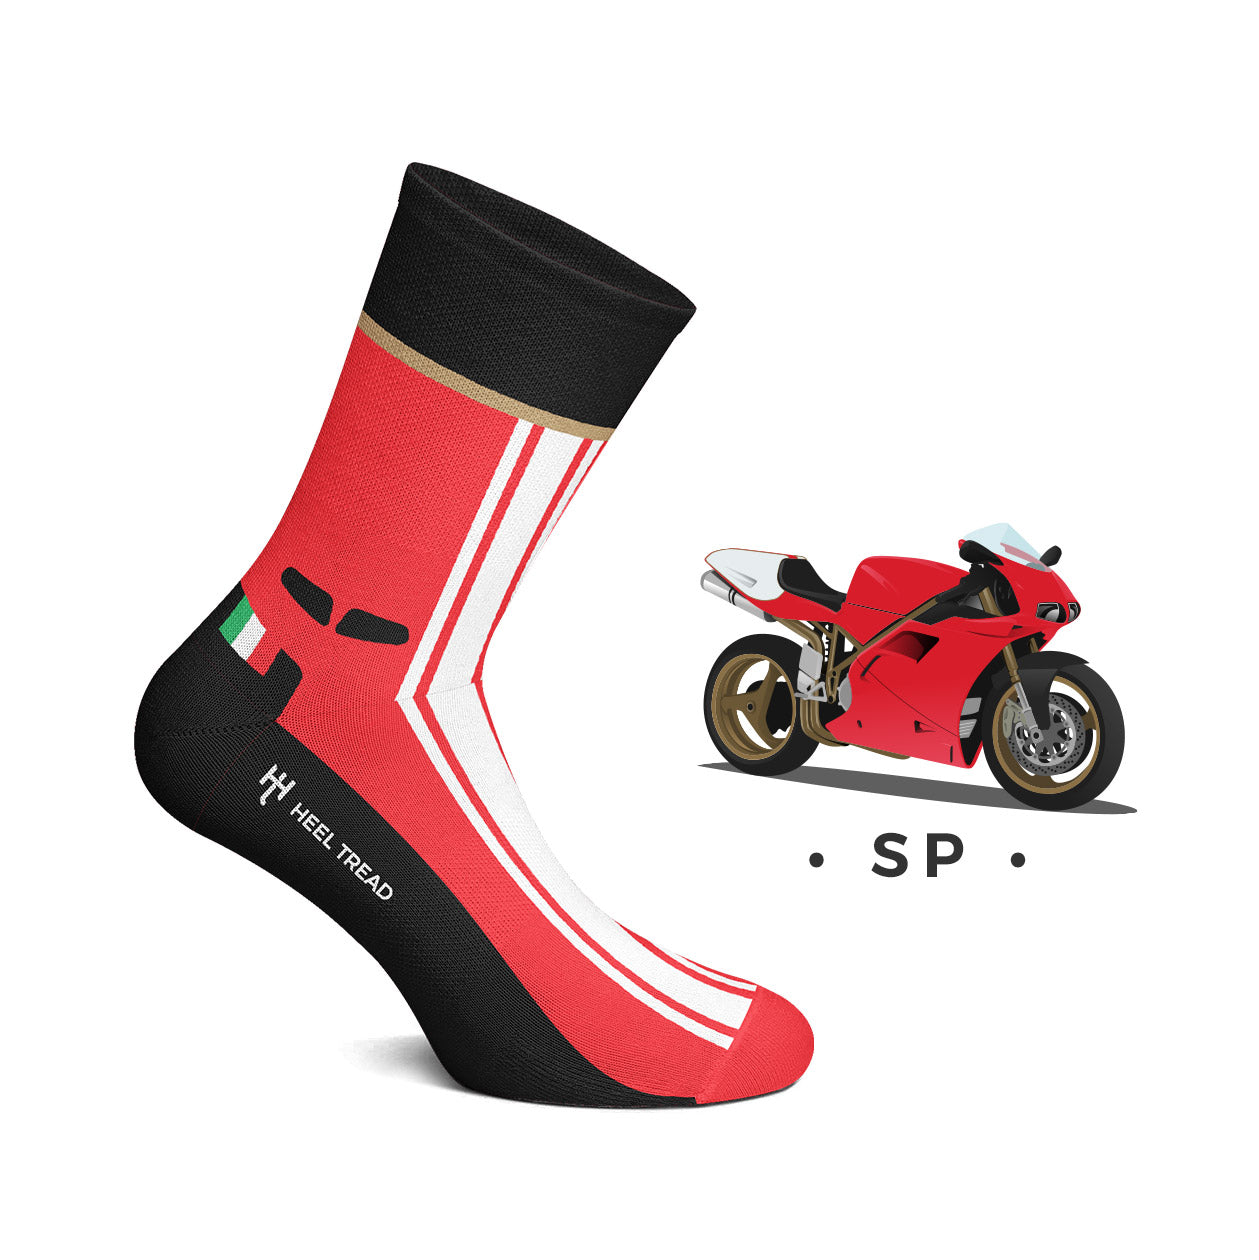 SP Socks